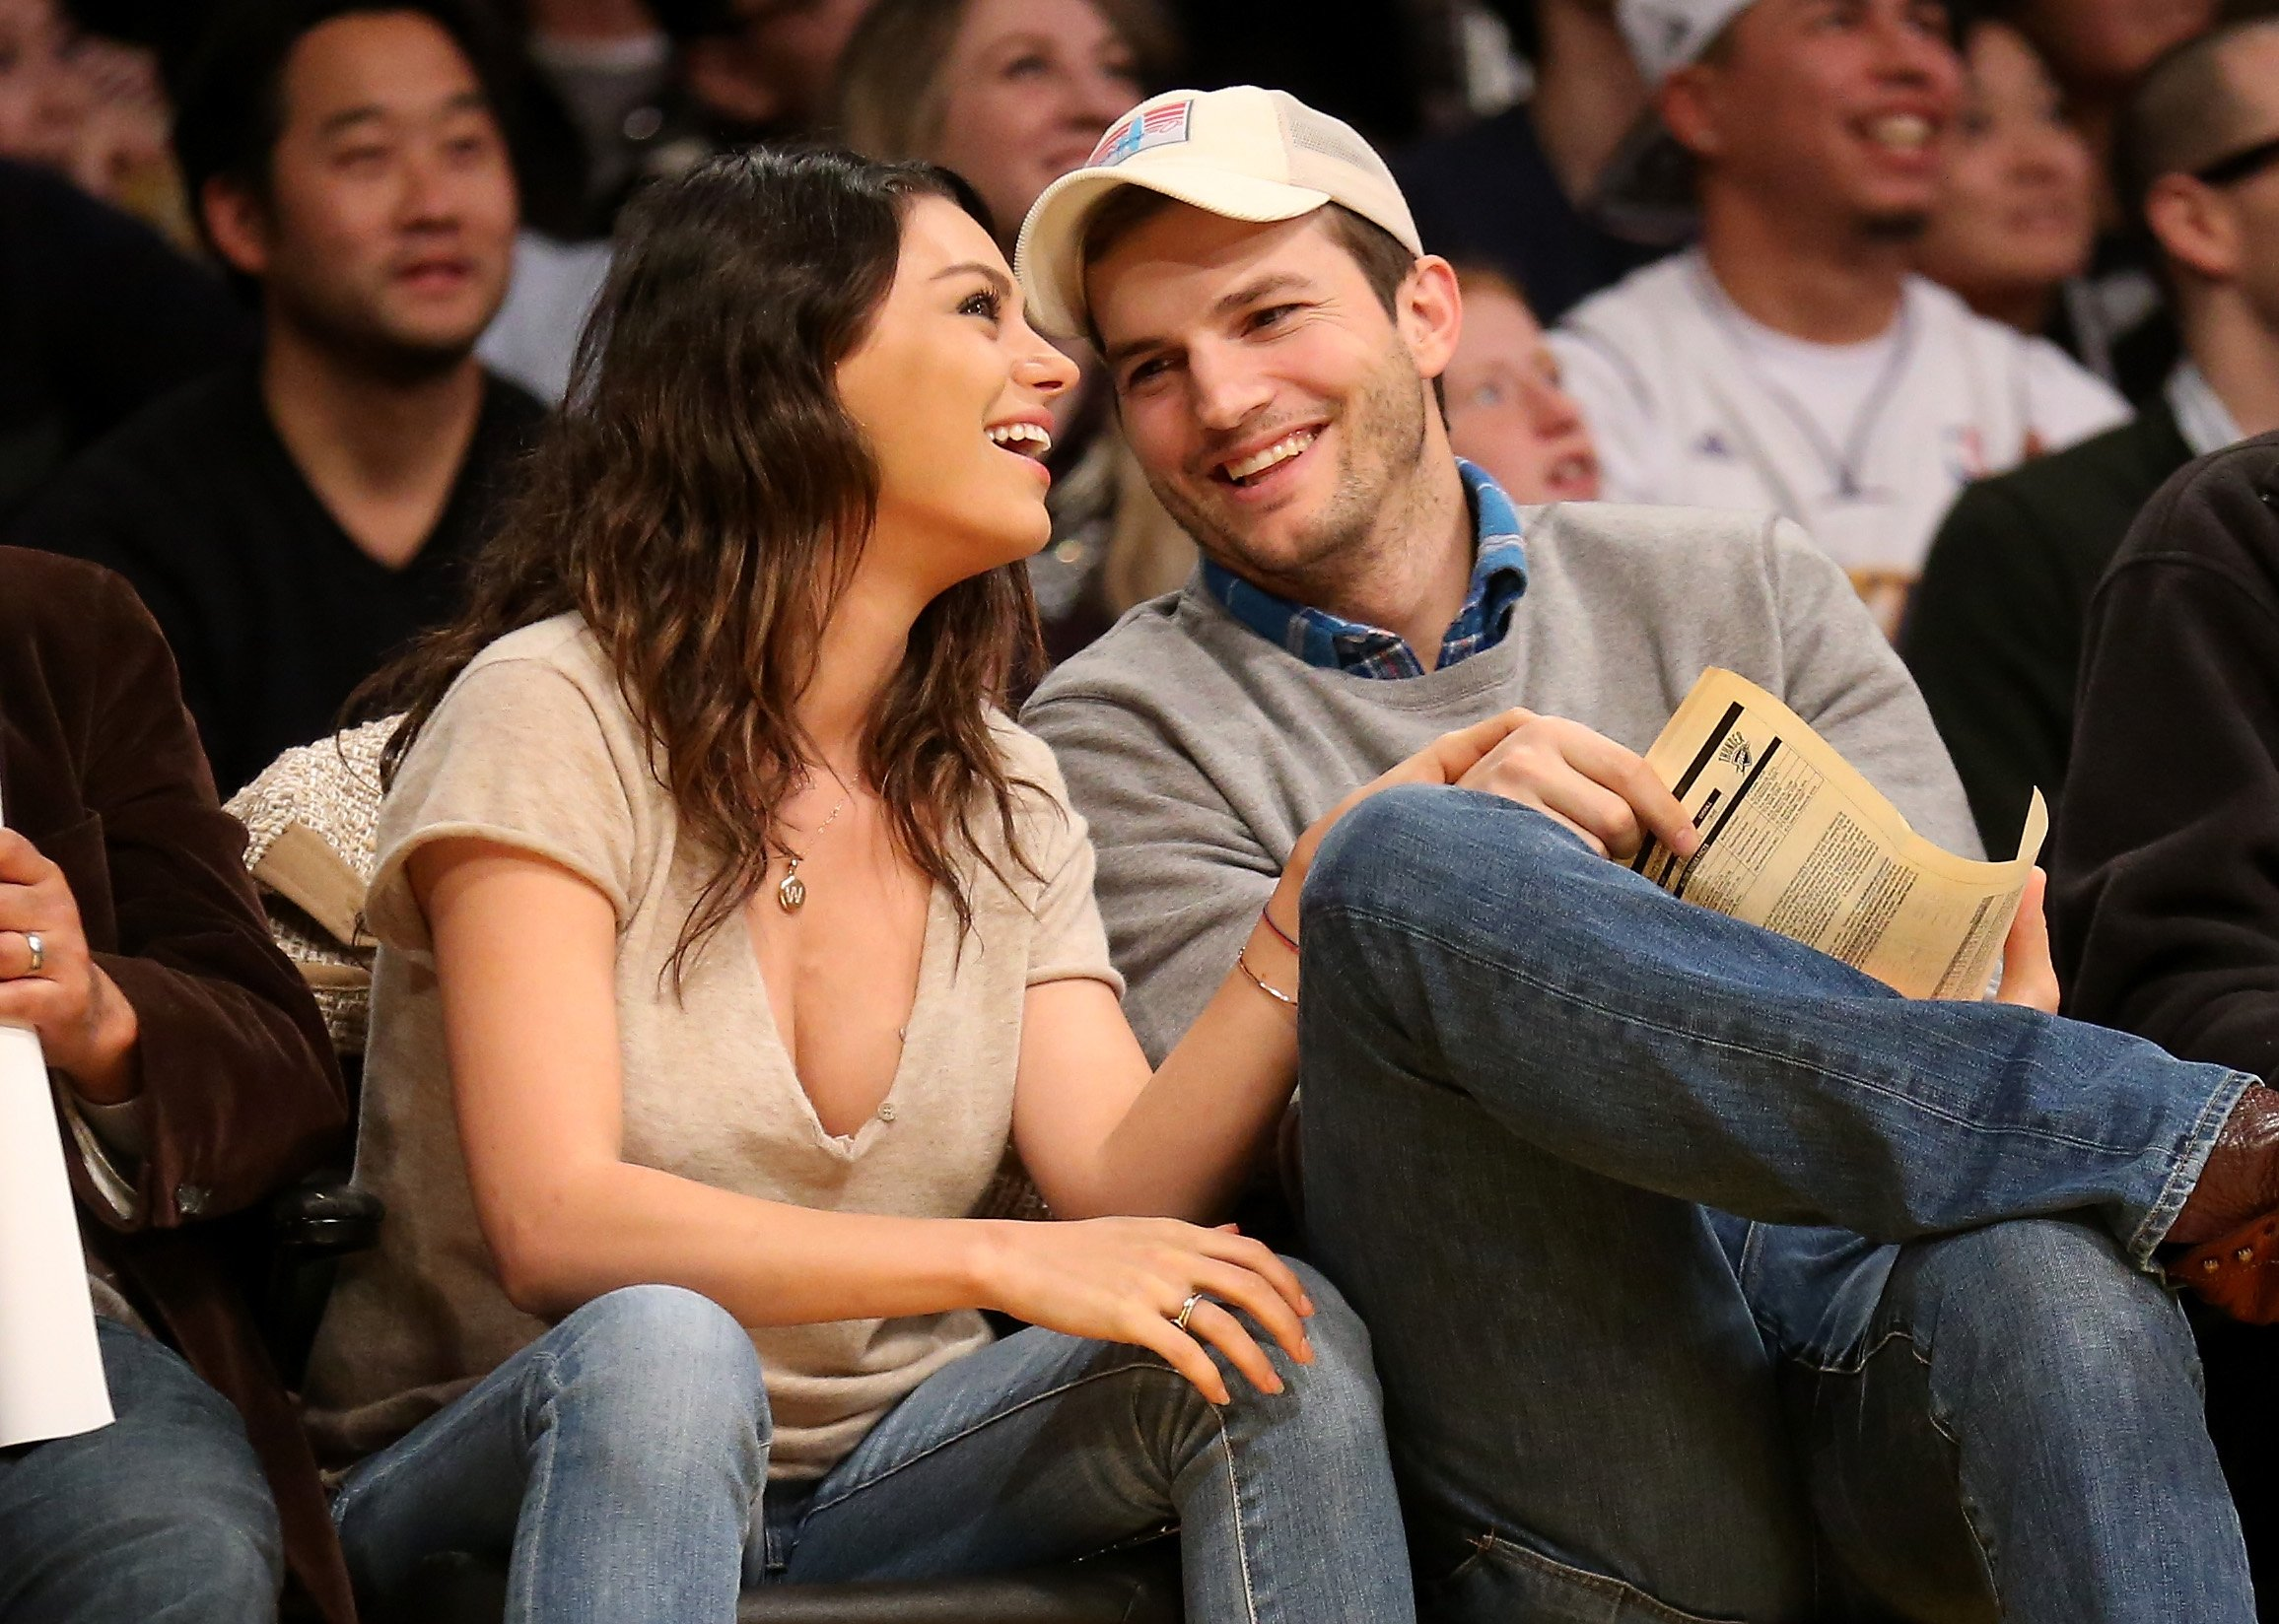 Ashton Kucher and Mila Kunis at Staples Center on December 19, 2014 | Photo: GettyImages